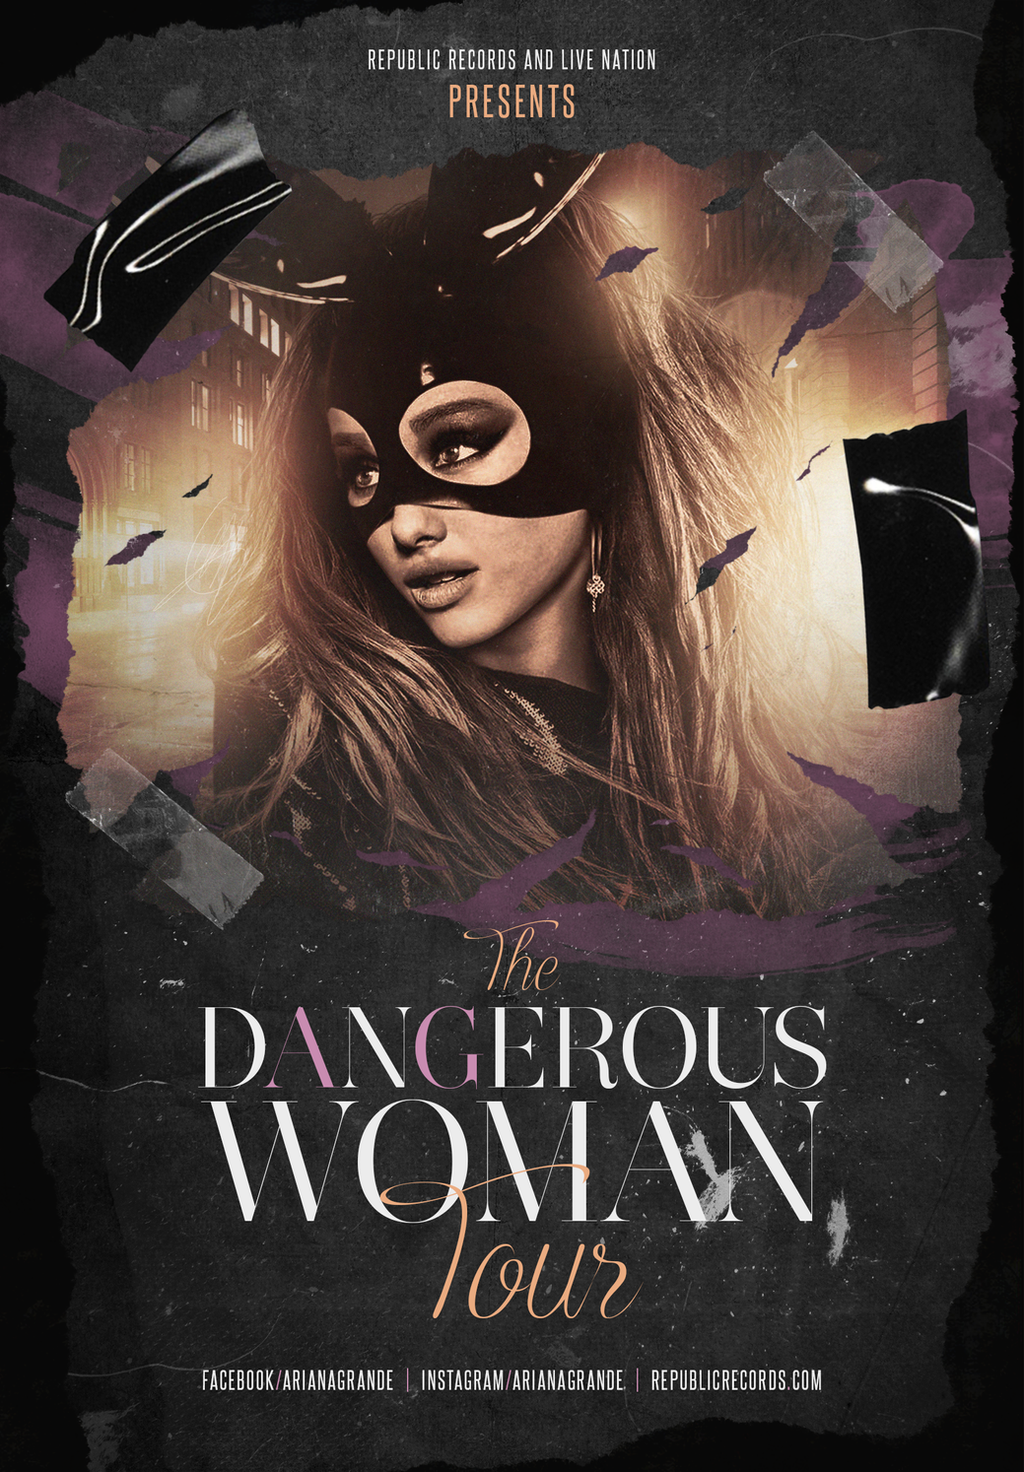 Ariana Grande Dangerous Woman Tour Poster By